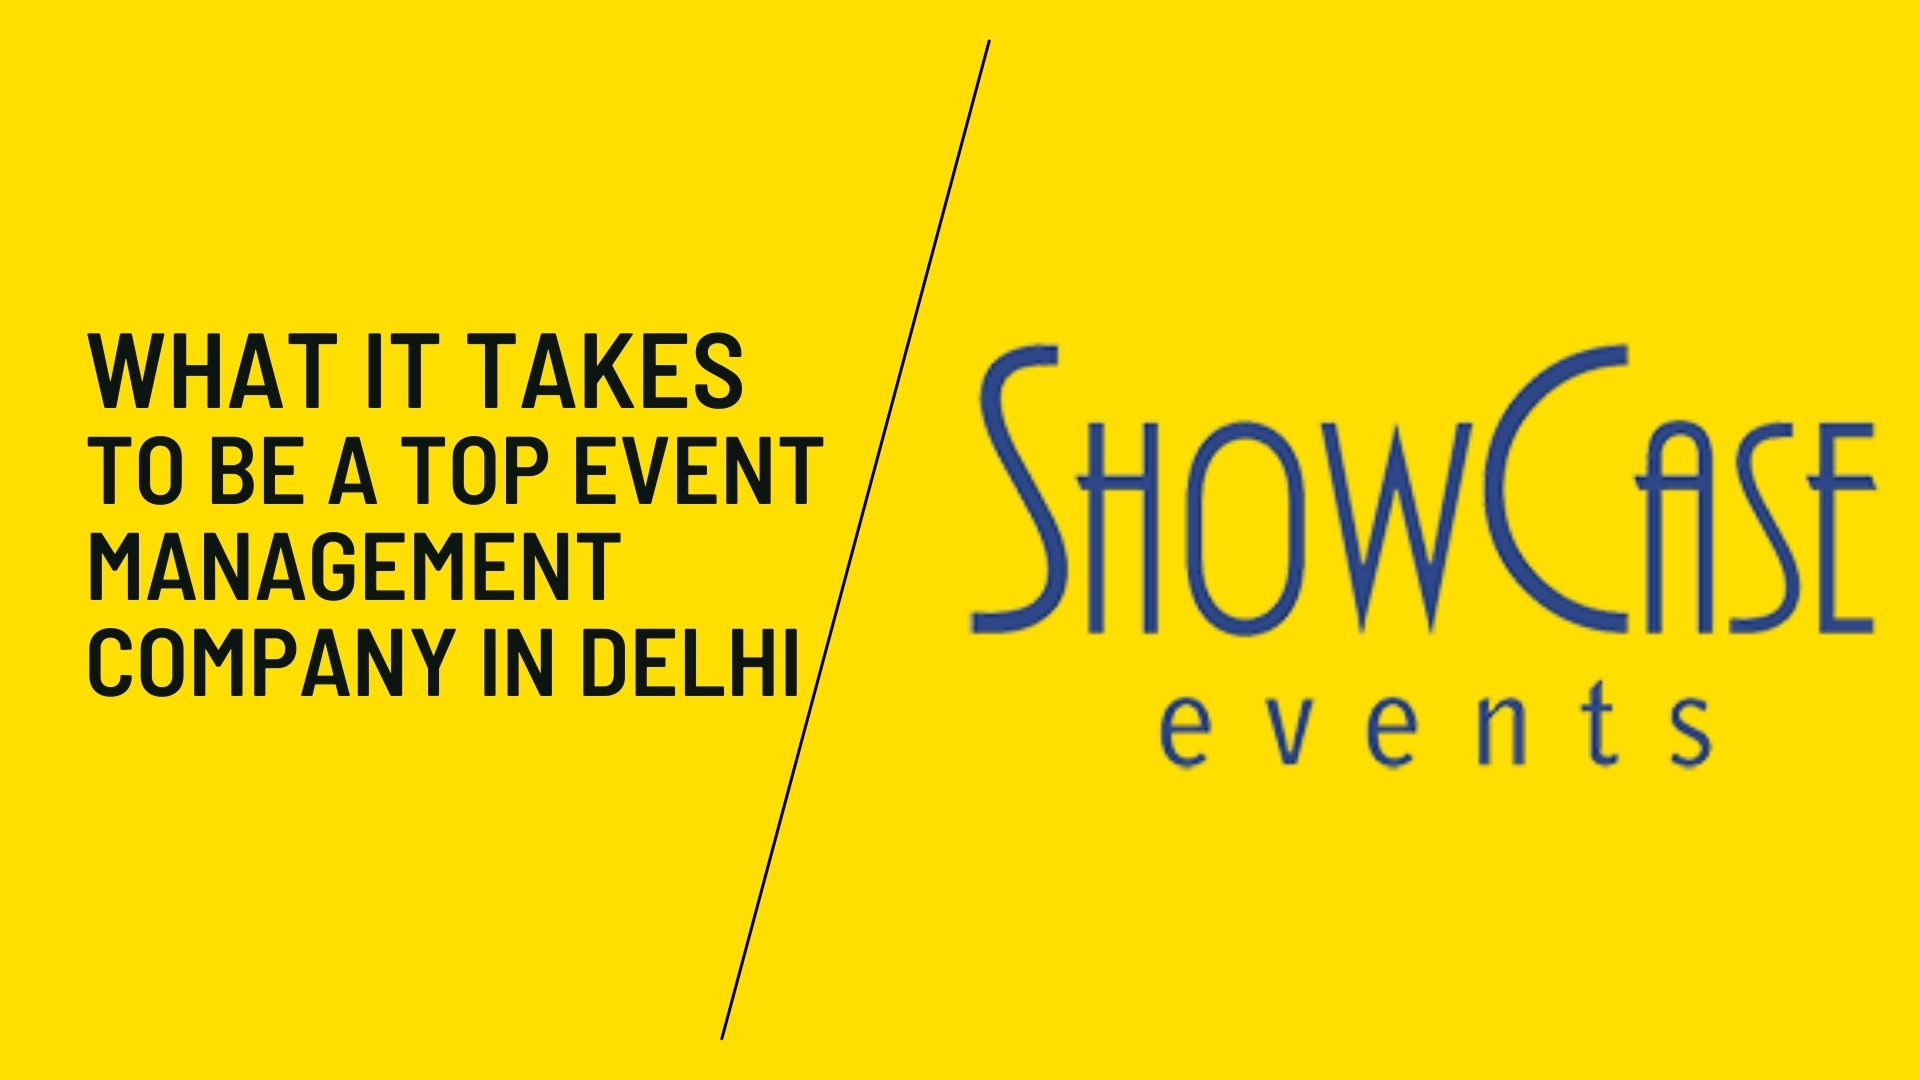 What It Takes To Be A Top Event Management Company in Delhi